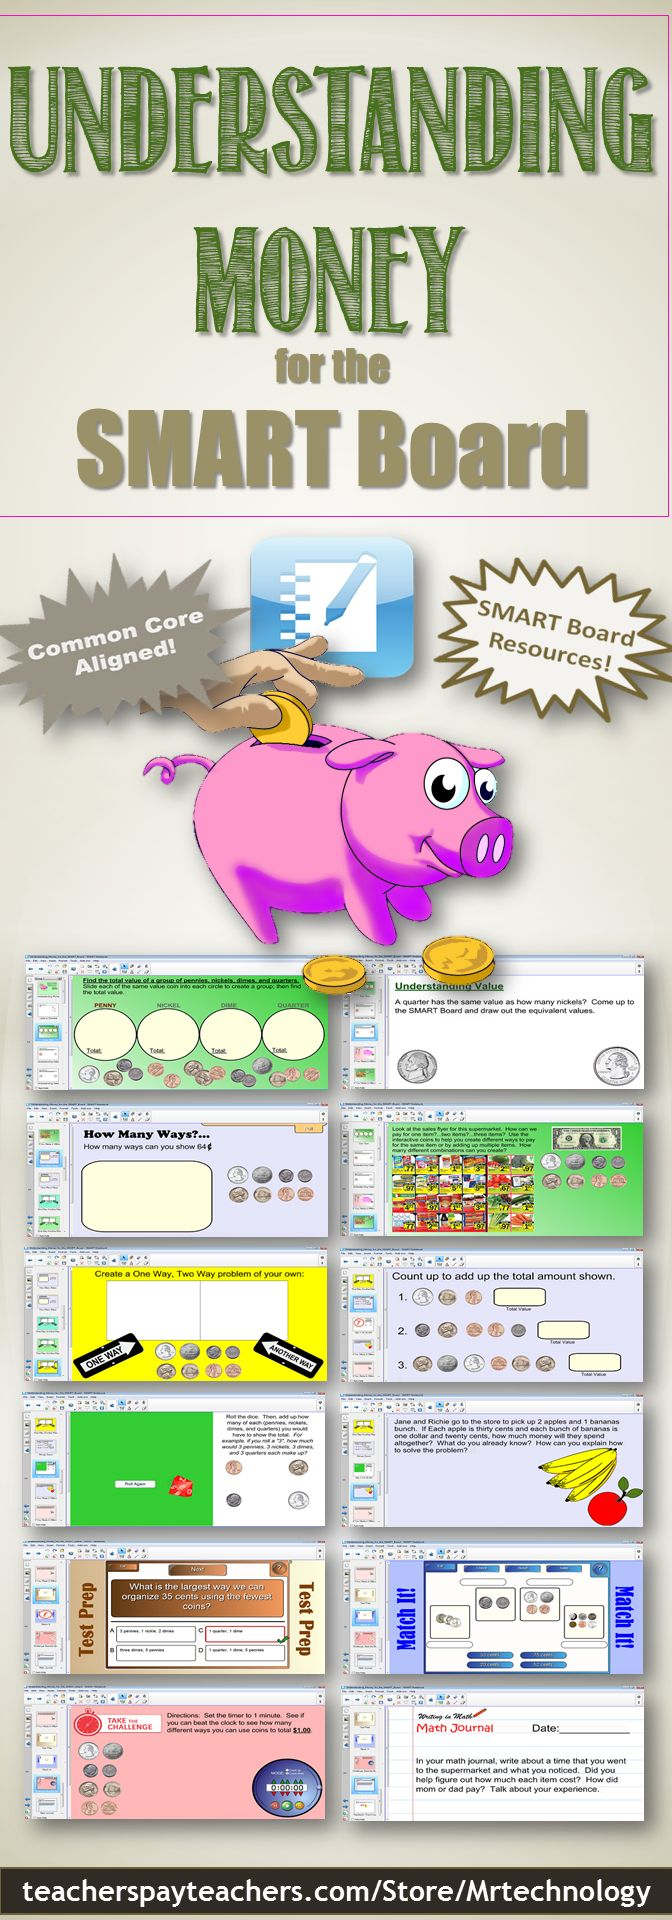 NEW to the SMART Board lineup from MrTechnology! This CCSS-aligned interactive SMART Board lesson allows students to explore different interactive ways to understand the concept and value of money. Interactive SMART Board activities include • Ordering from least to greatest • Coin sort • Understanding value • How much is...? • How many ways? • One way / Another Way • Money Count • Word Problems • Test Prep (multiple choice) • Match It! • Challenge: Beat the Clock • Math Journal Question